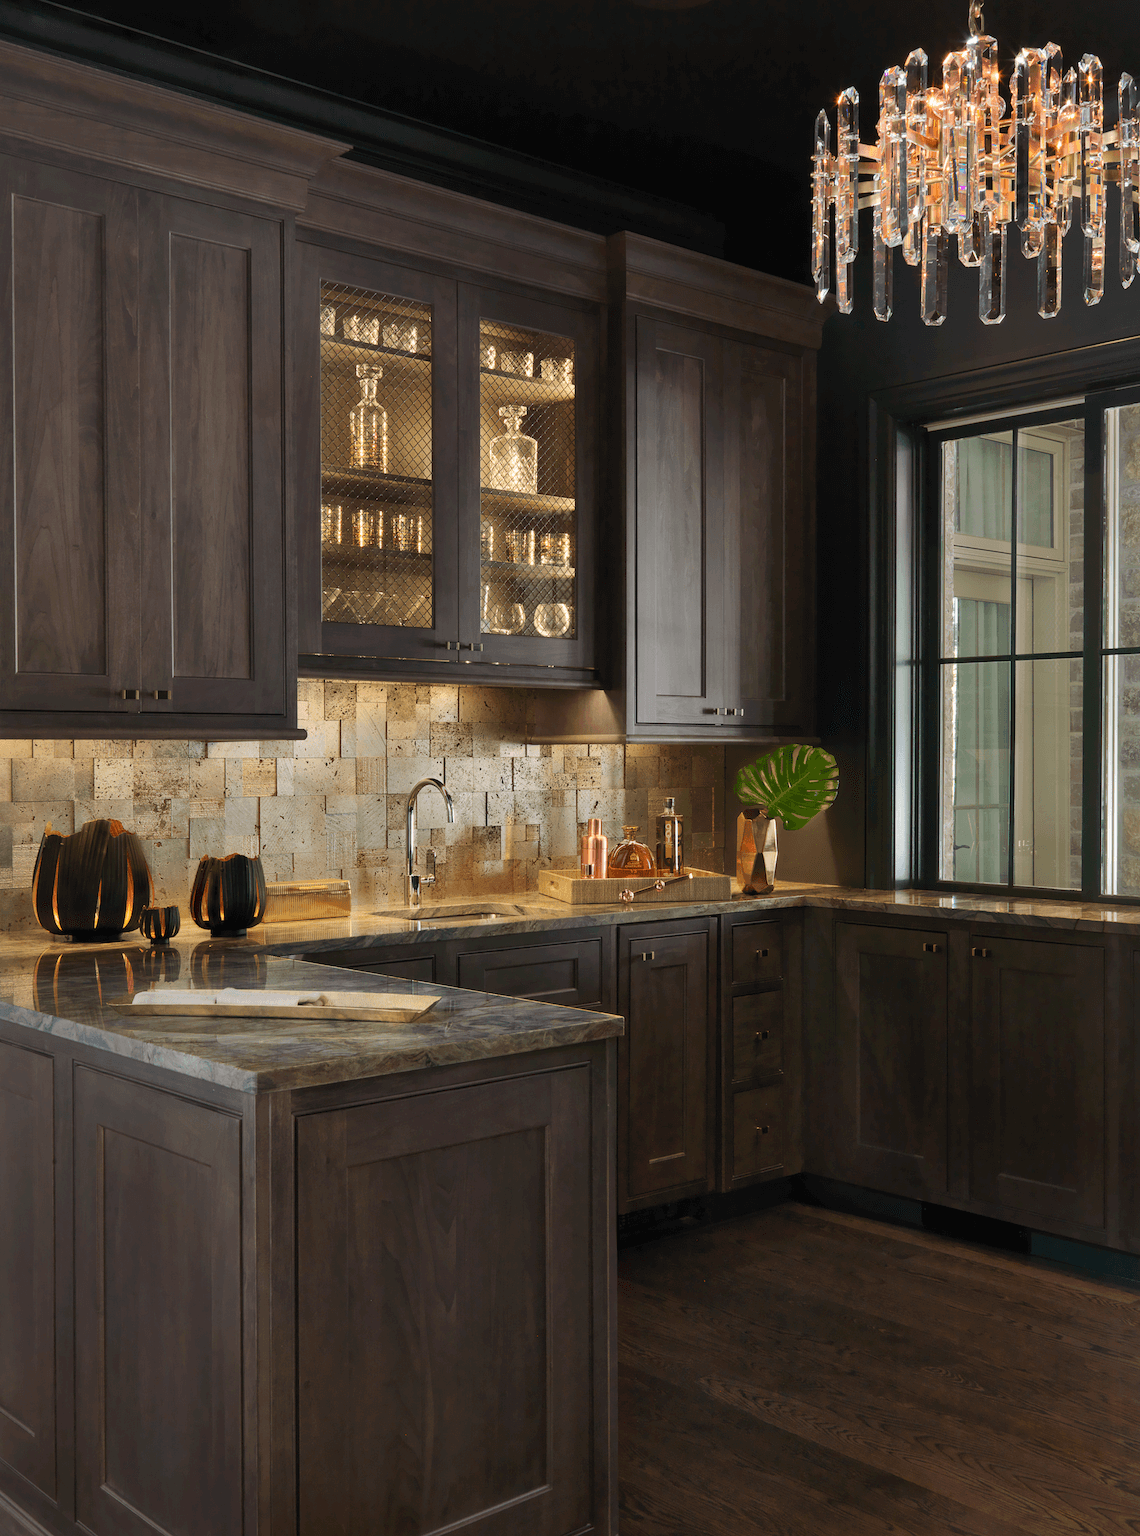 wet bar lighting. Wet Bar With Warm Gold, Copper And Leather Accents Lighting N